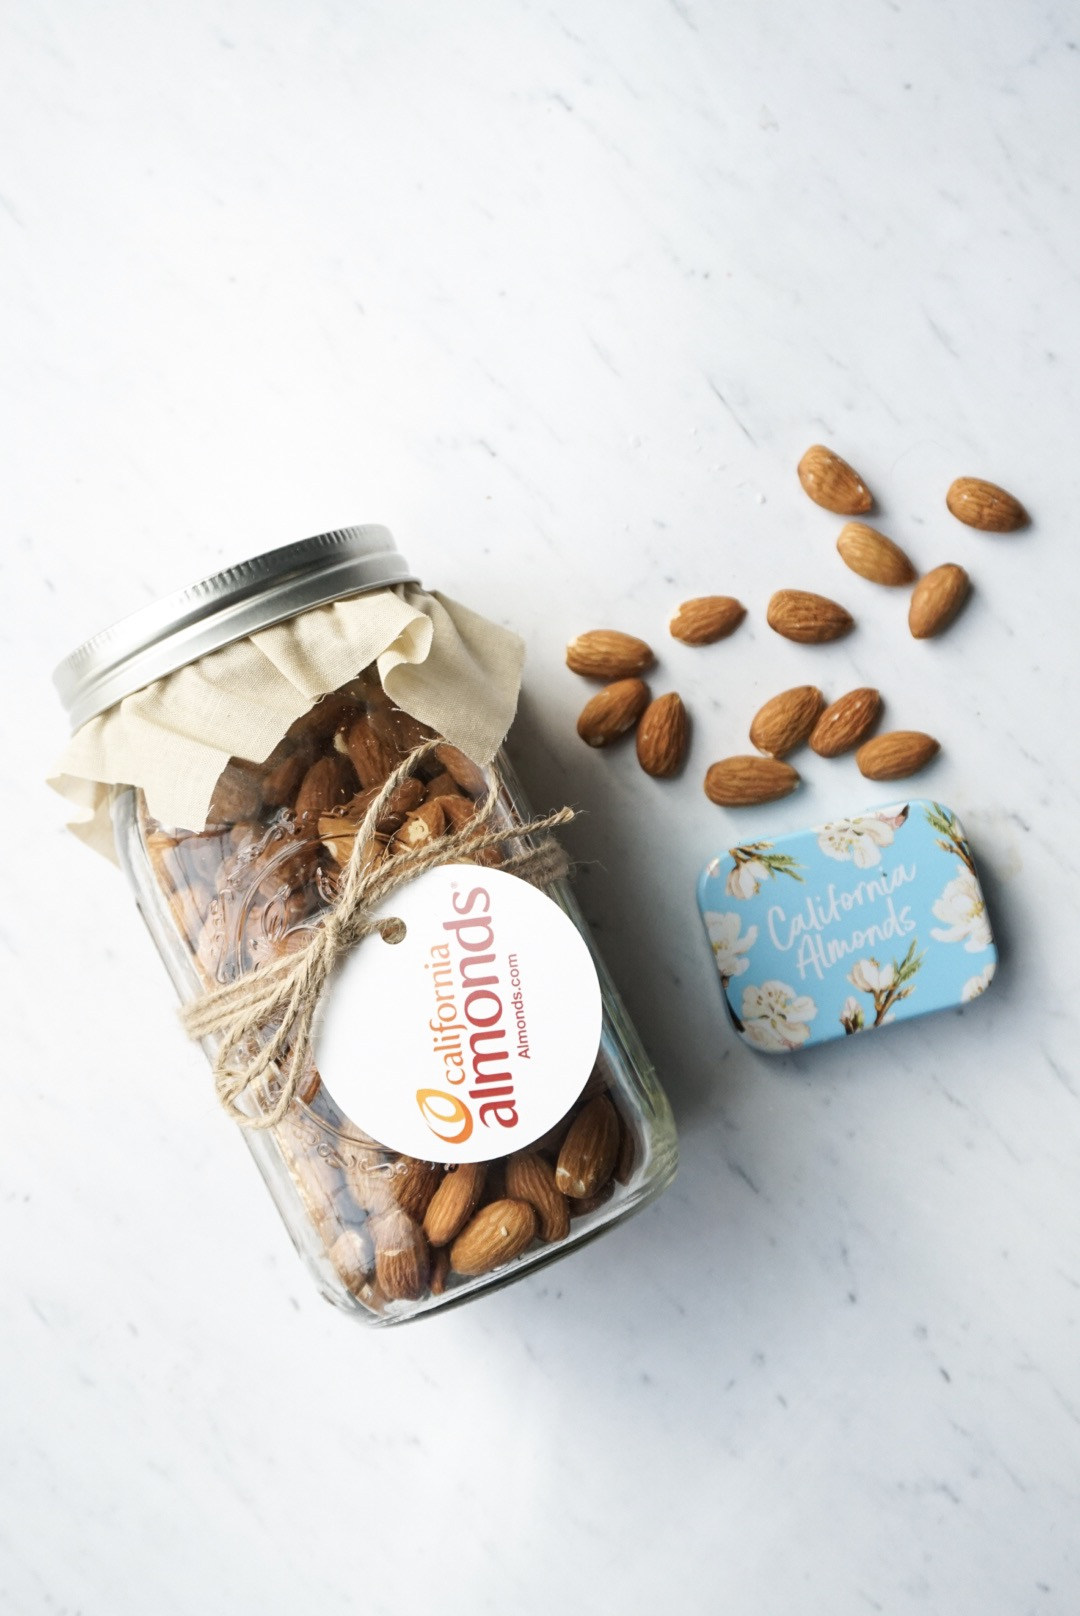 California Almonds, Healthy Snack Friday Favorites